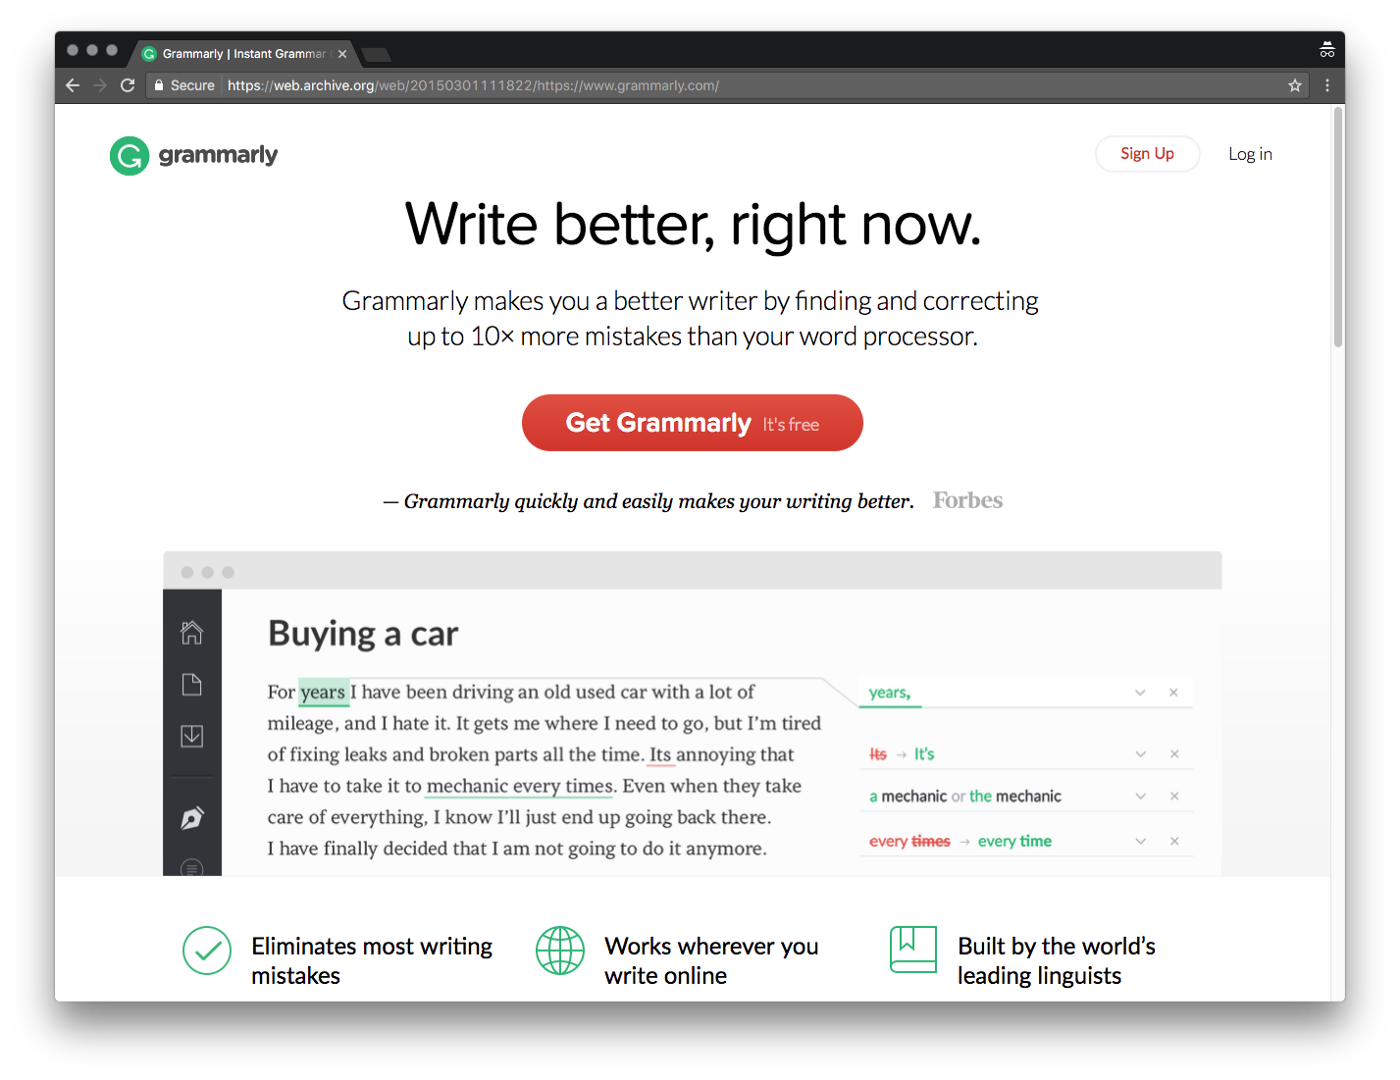 Whats The Purpose Of Balancing Or Monitoring Your Checking Account >> How Grammarly Quietly Grew Its Way To 6 9 Million Daily Users In 9 Years